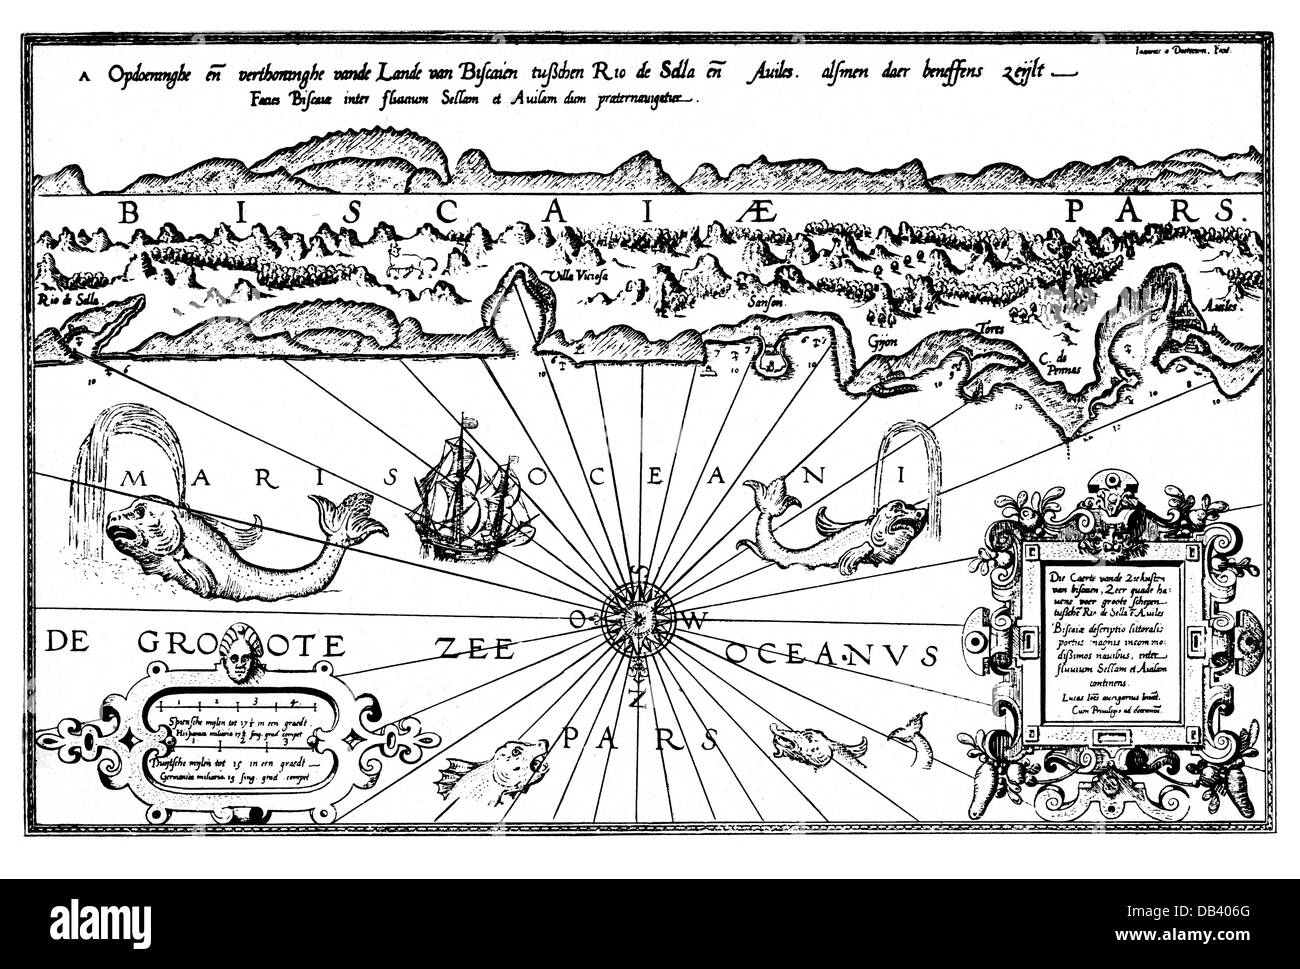 cartography, sea charts, north coast of Spain, Bay of  Biscay, map by Lucas Janszoon Waghenaer 'Spieghel der - Stock Image